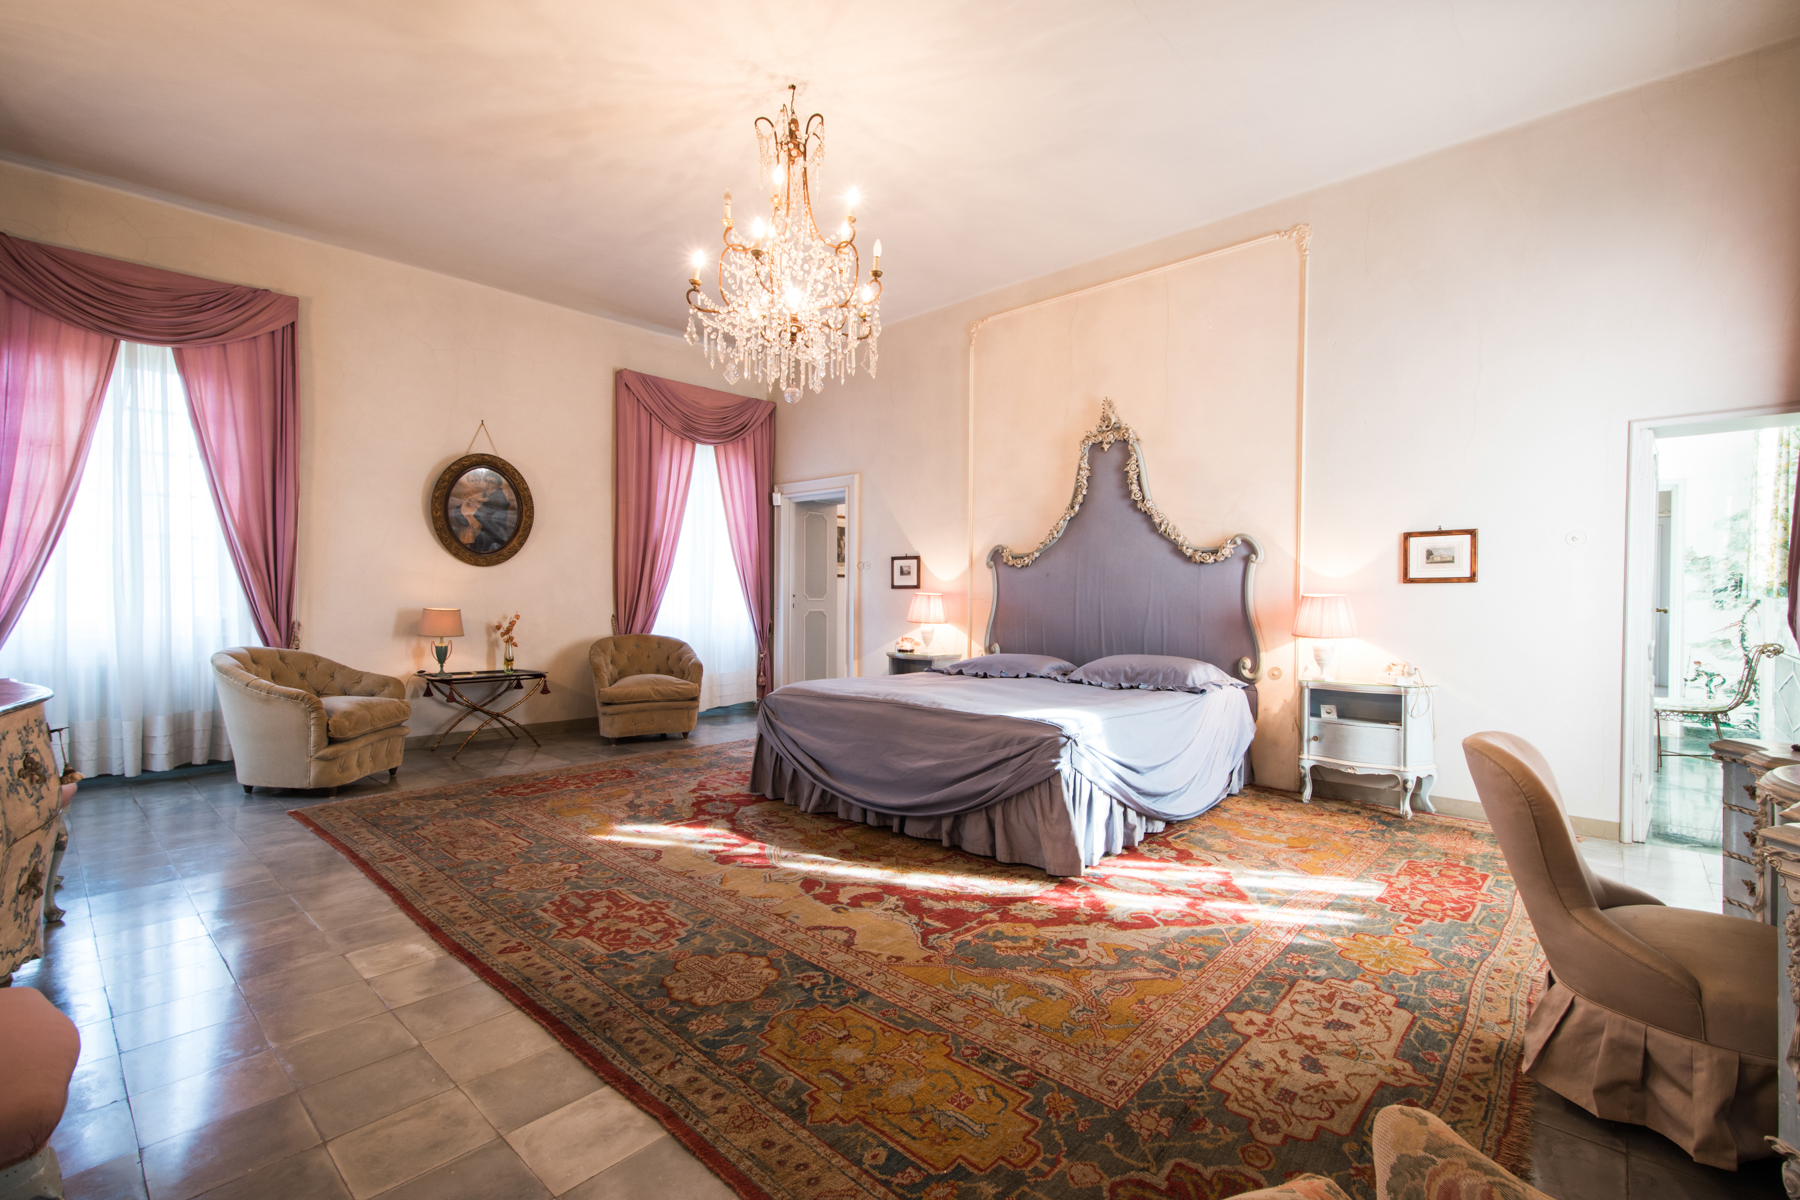 Additional photo for property listing at Charming 18th century villa in Lucca countryside Montuolo Lucca, Lucca 55100 Italien